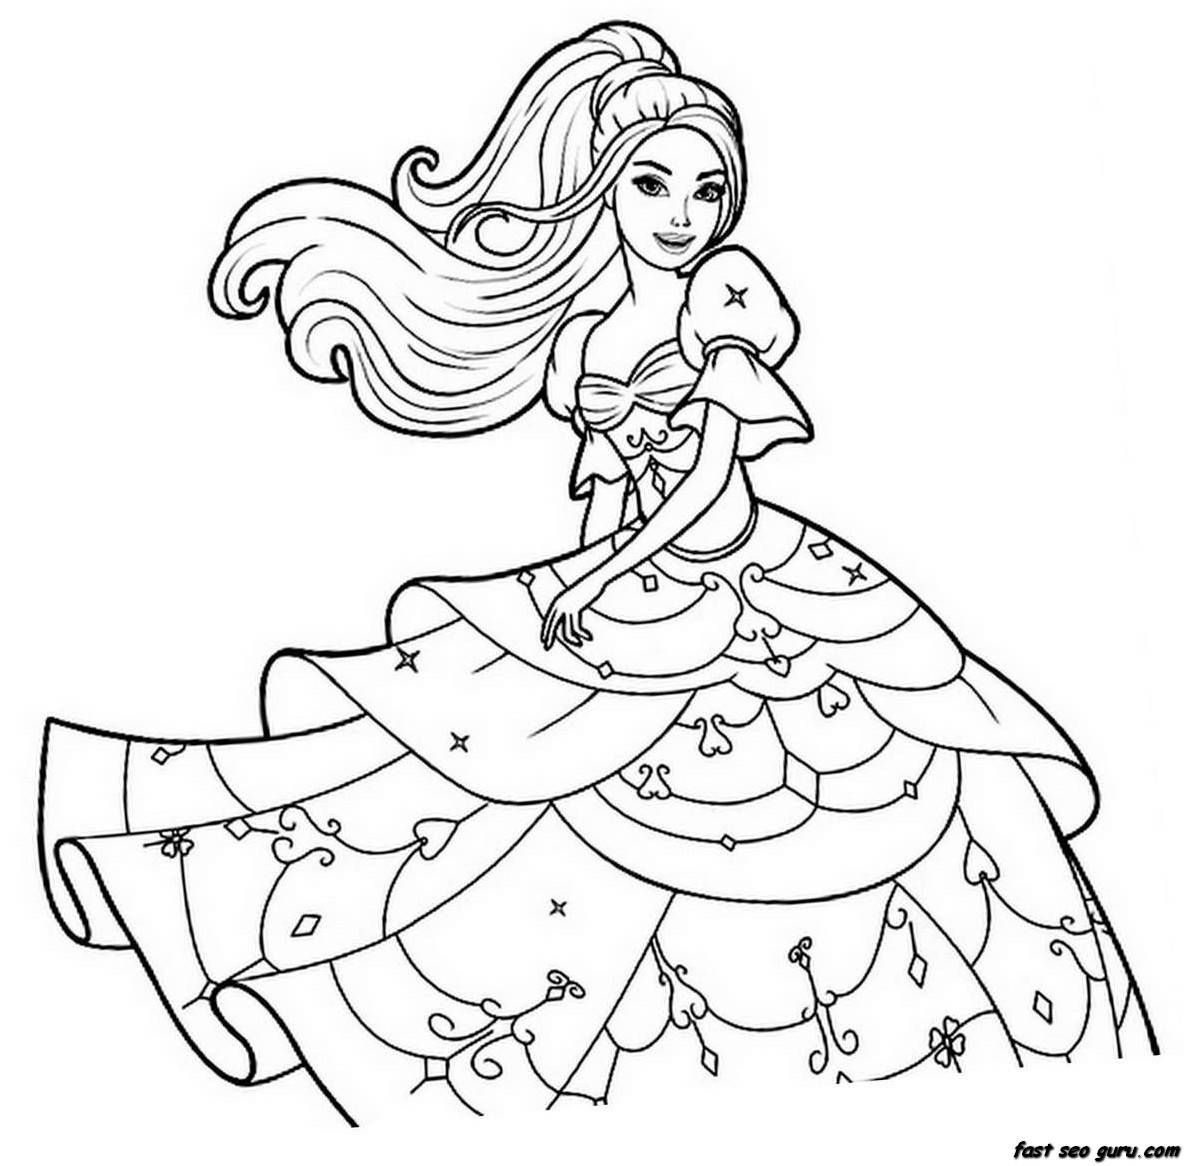 free girl coloring pages to print cute girl coloring pages to download and print for free coloring print free girl to pages